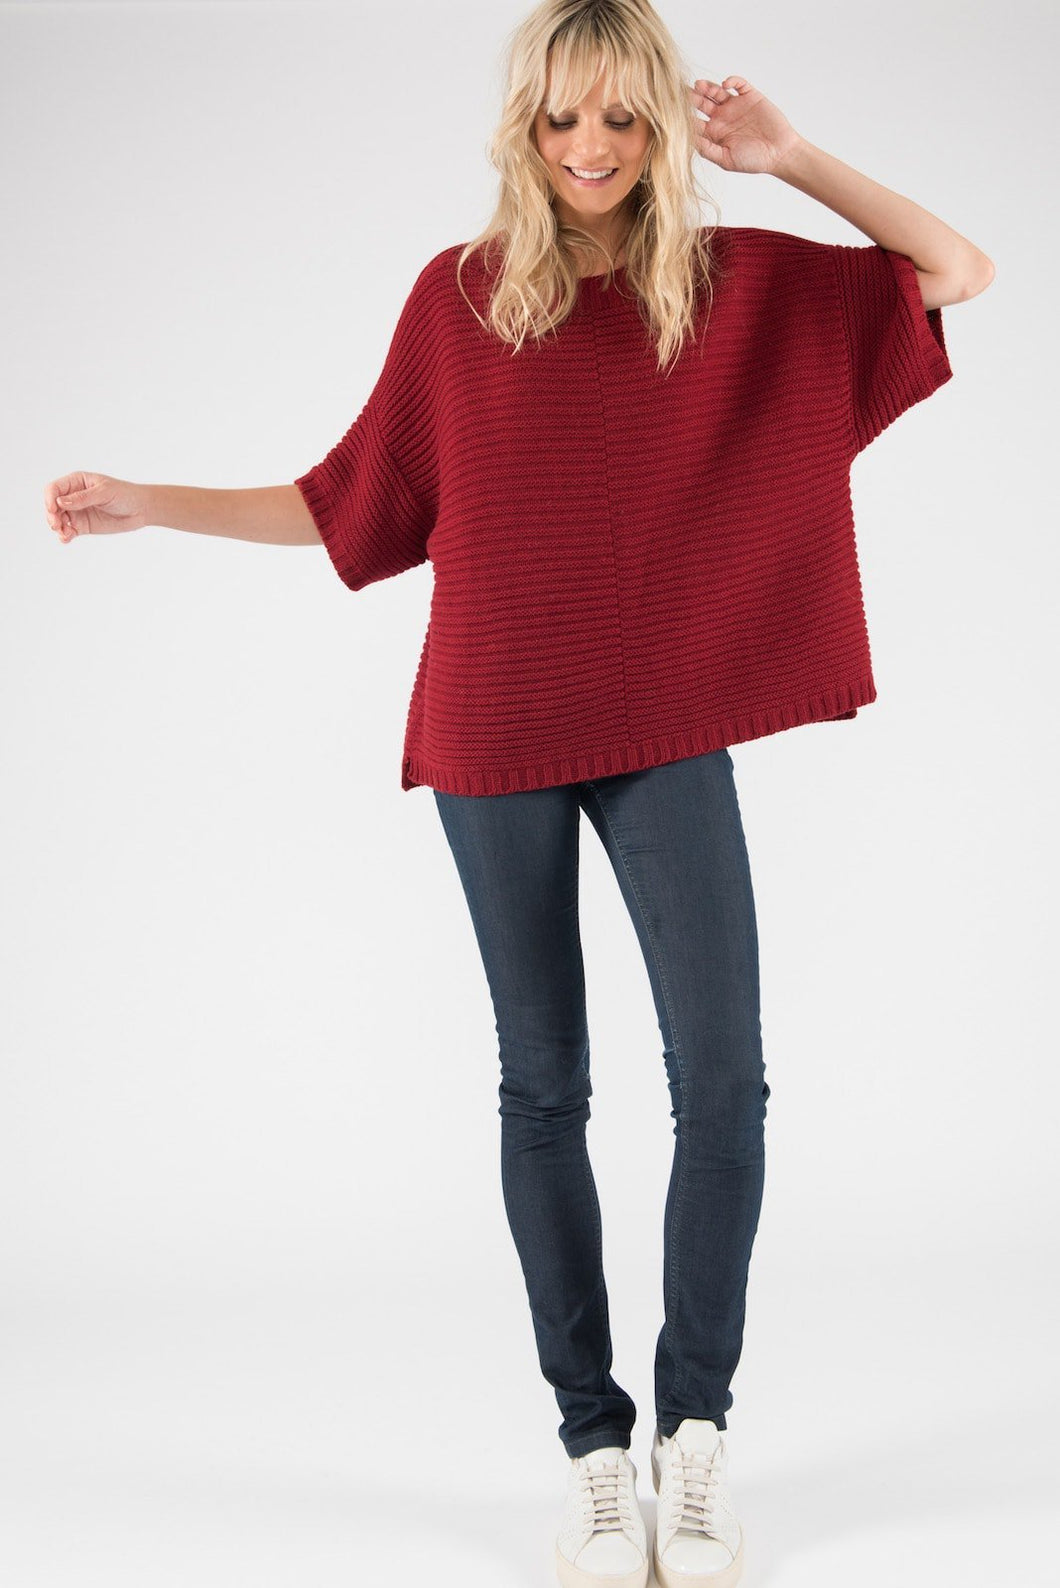 Poncho Jumper in red eco cashmere merino yarns from Ally Bee